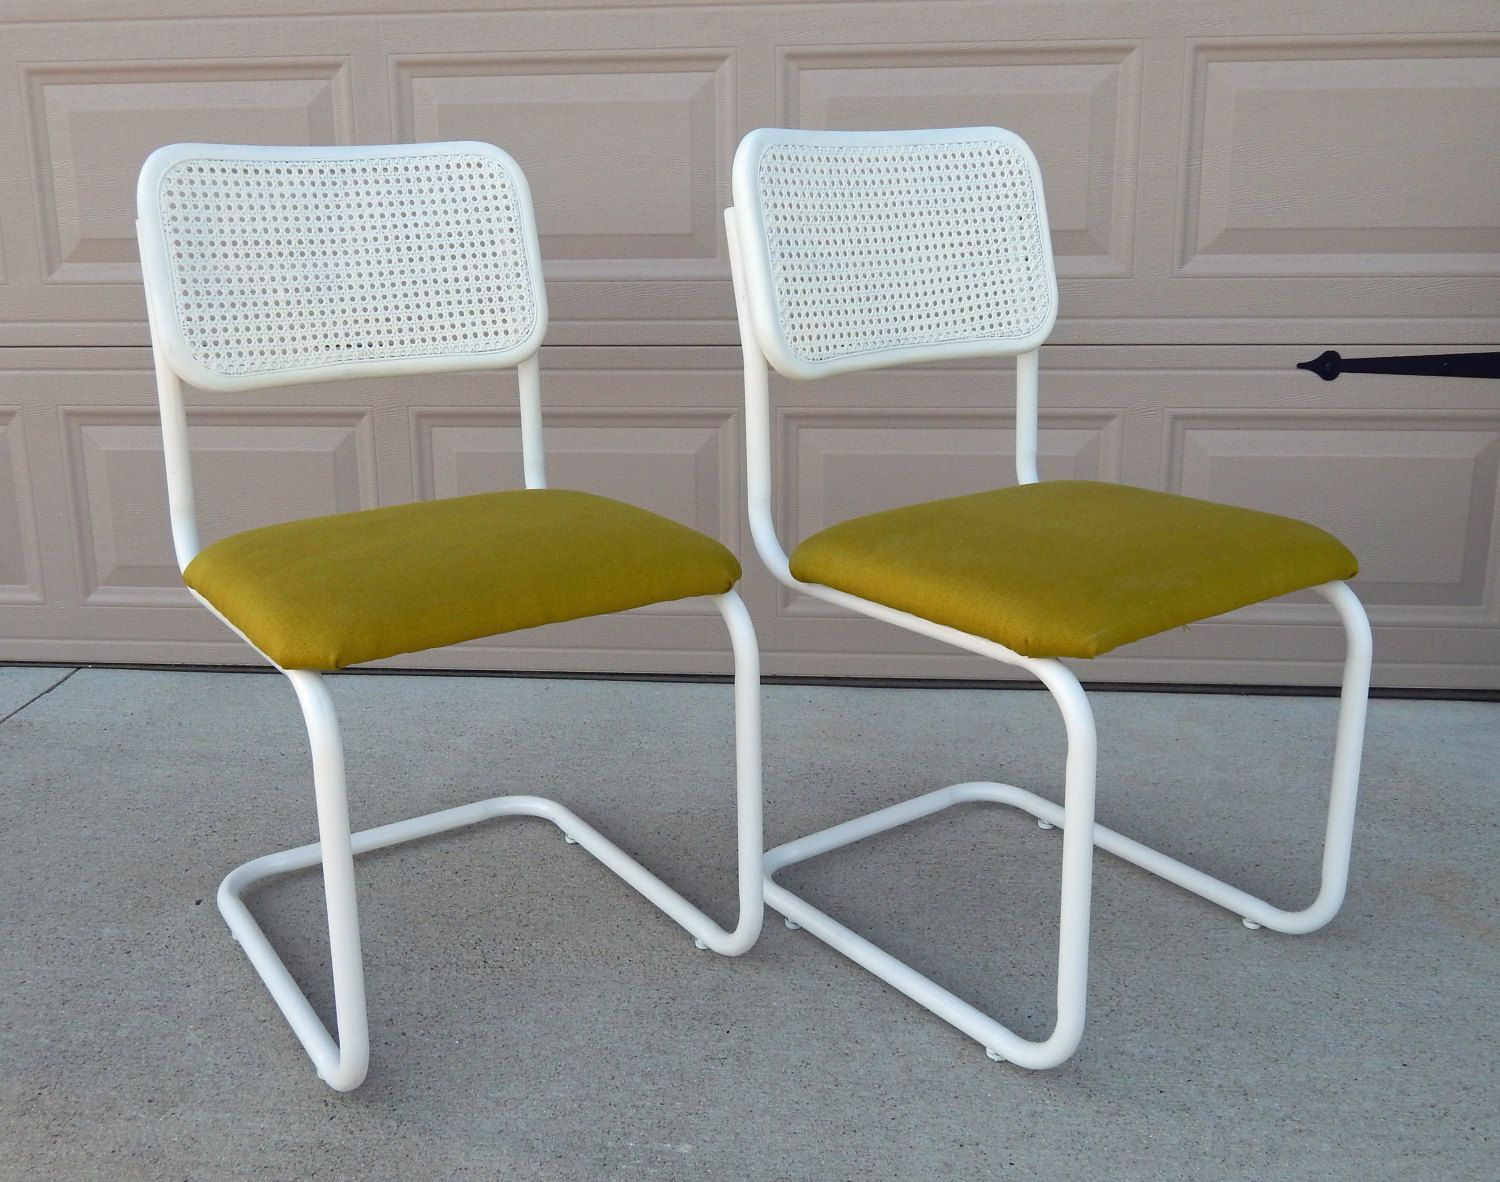 Breuer chair cane - Vintage Marcel Breuer Cesca Chair Refinished Reupholstered Apple Green Linen Upholstery White